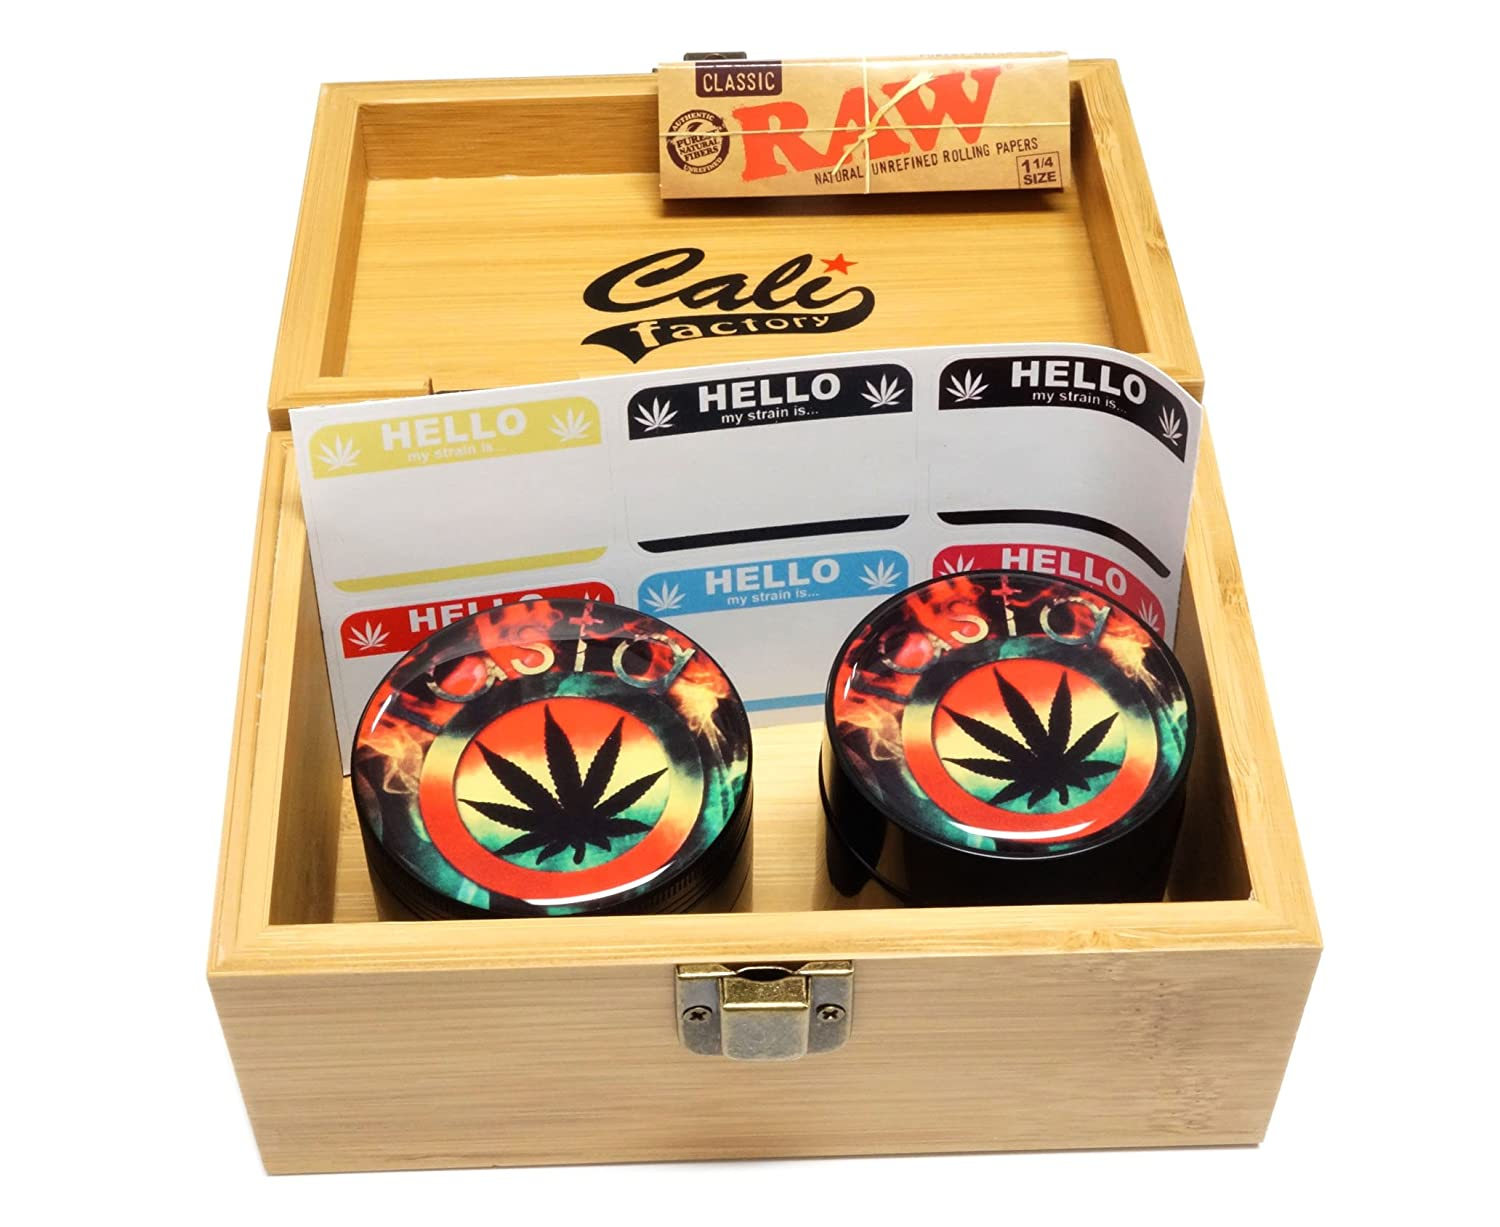 Jar in Medium Size Sacred Geometry Stash Box with Latch Combo Gift Package Item# MED062118-7 Doming USA Grinder Cali Factory Rasta Design